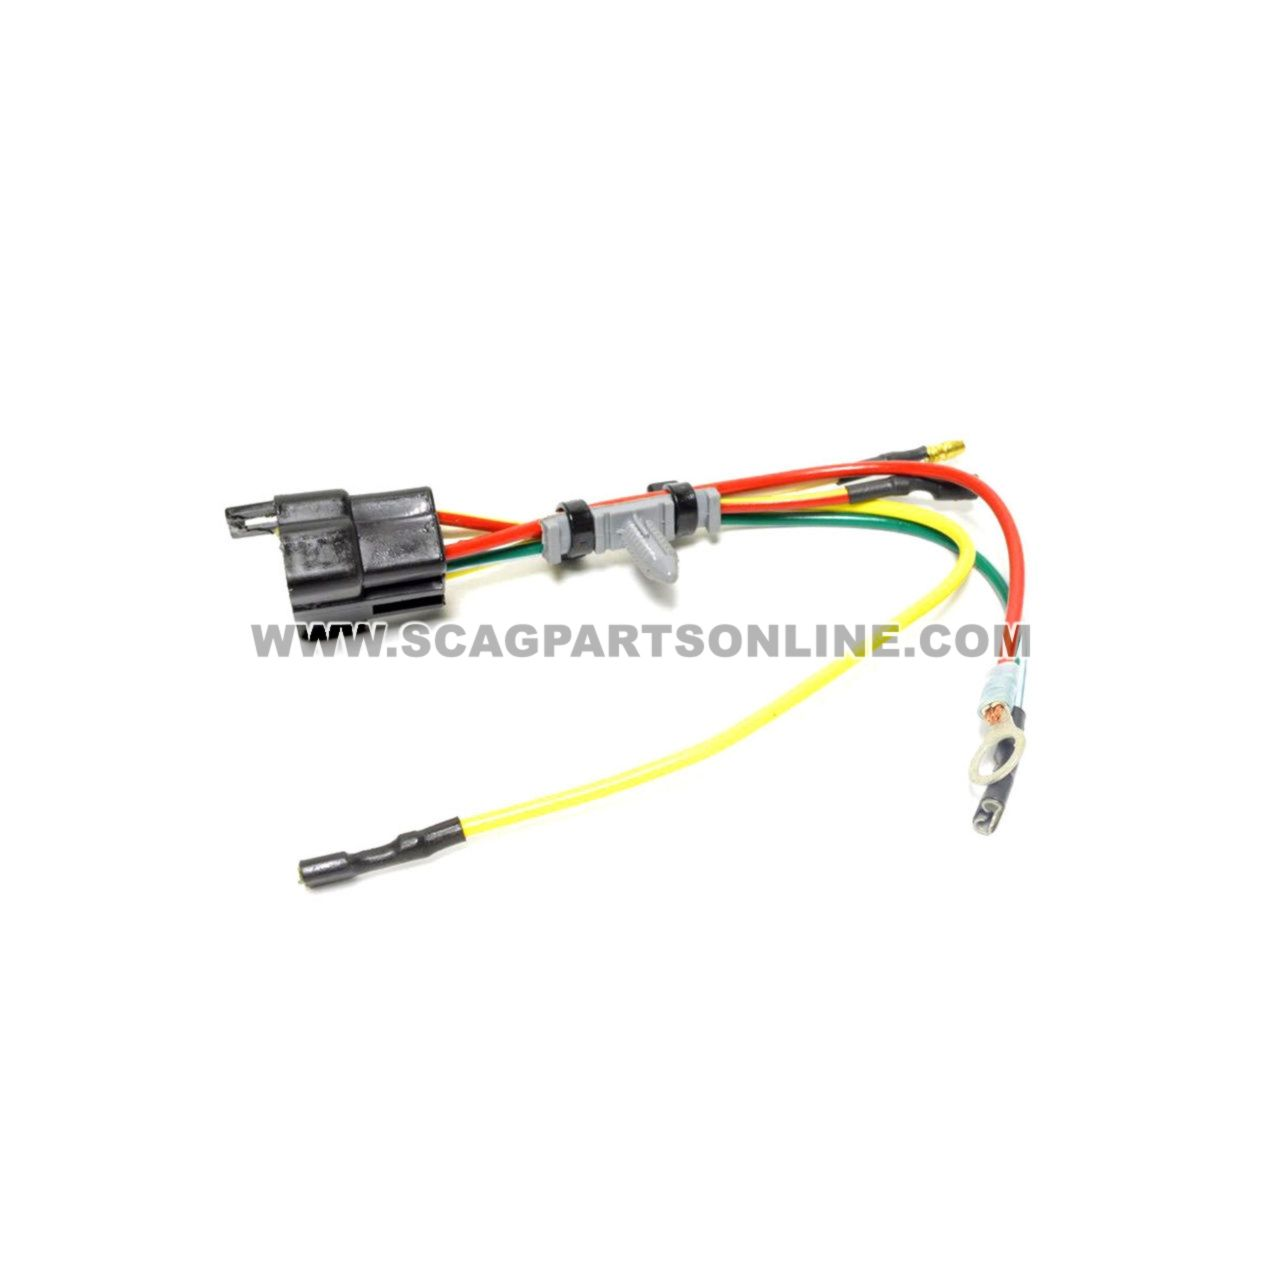 Scag 482543 Wire Harness Adapter Stc-ka